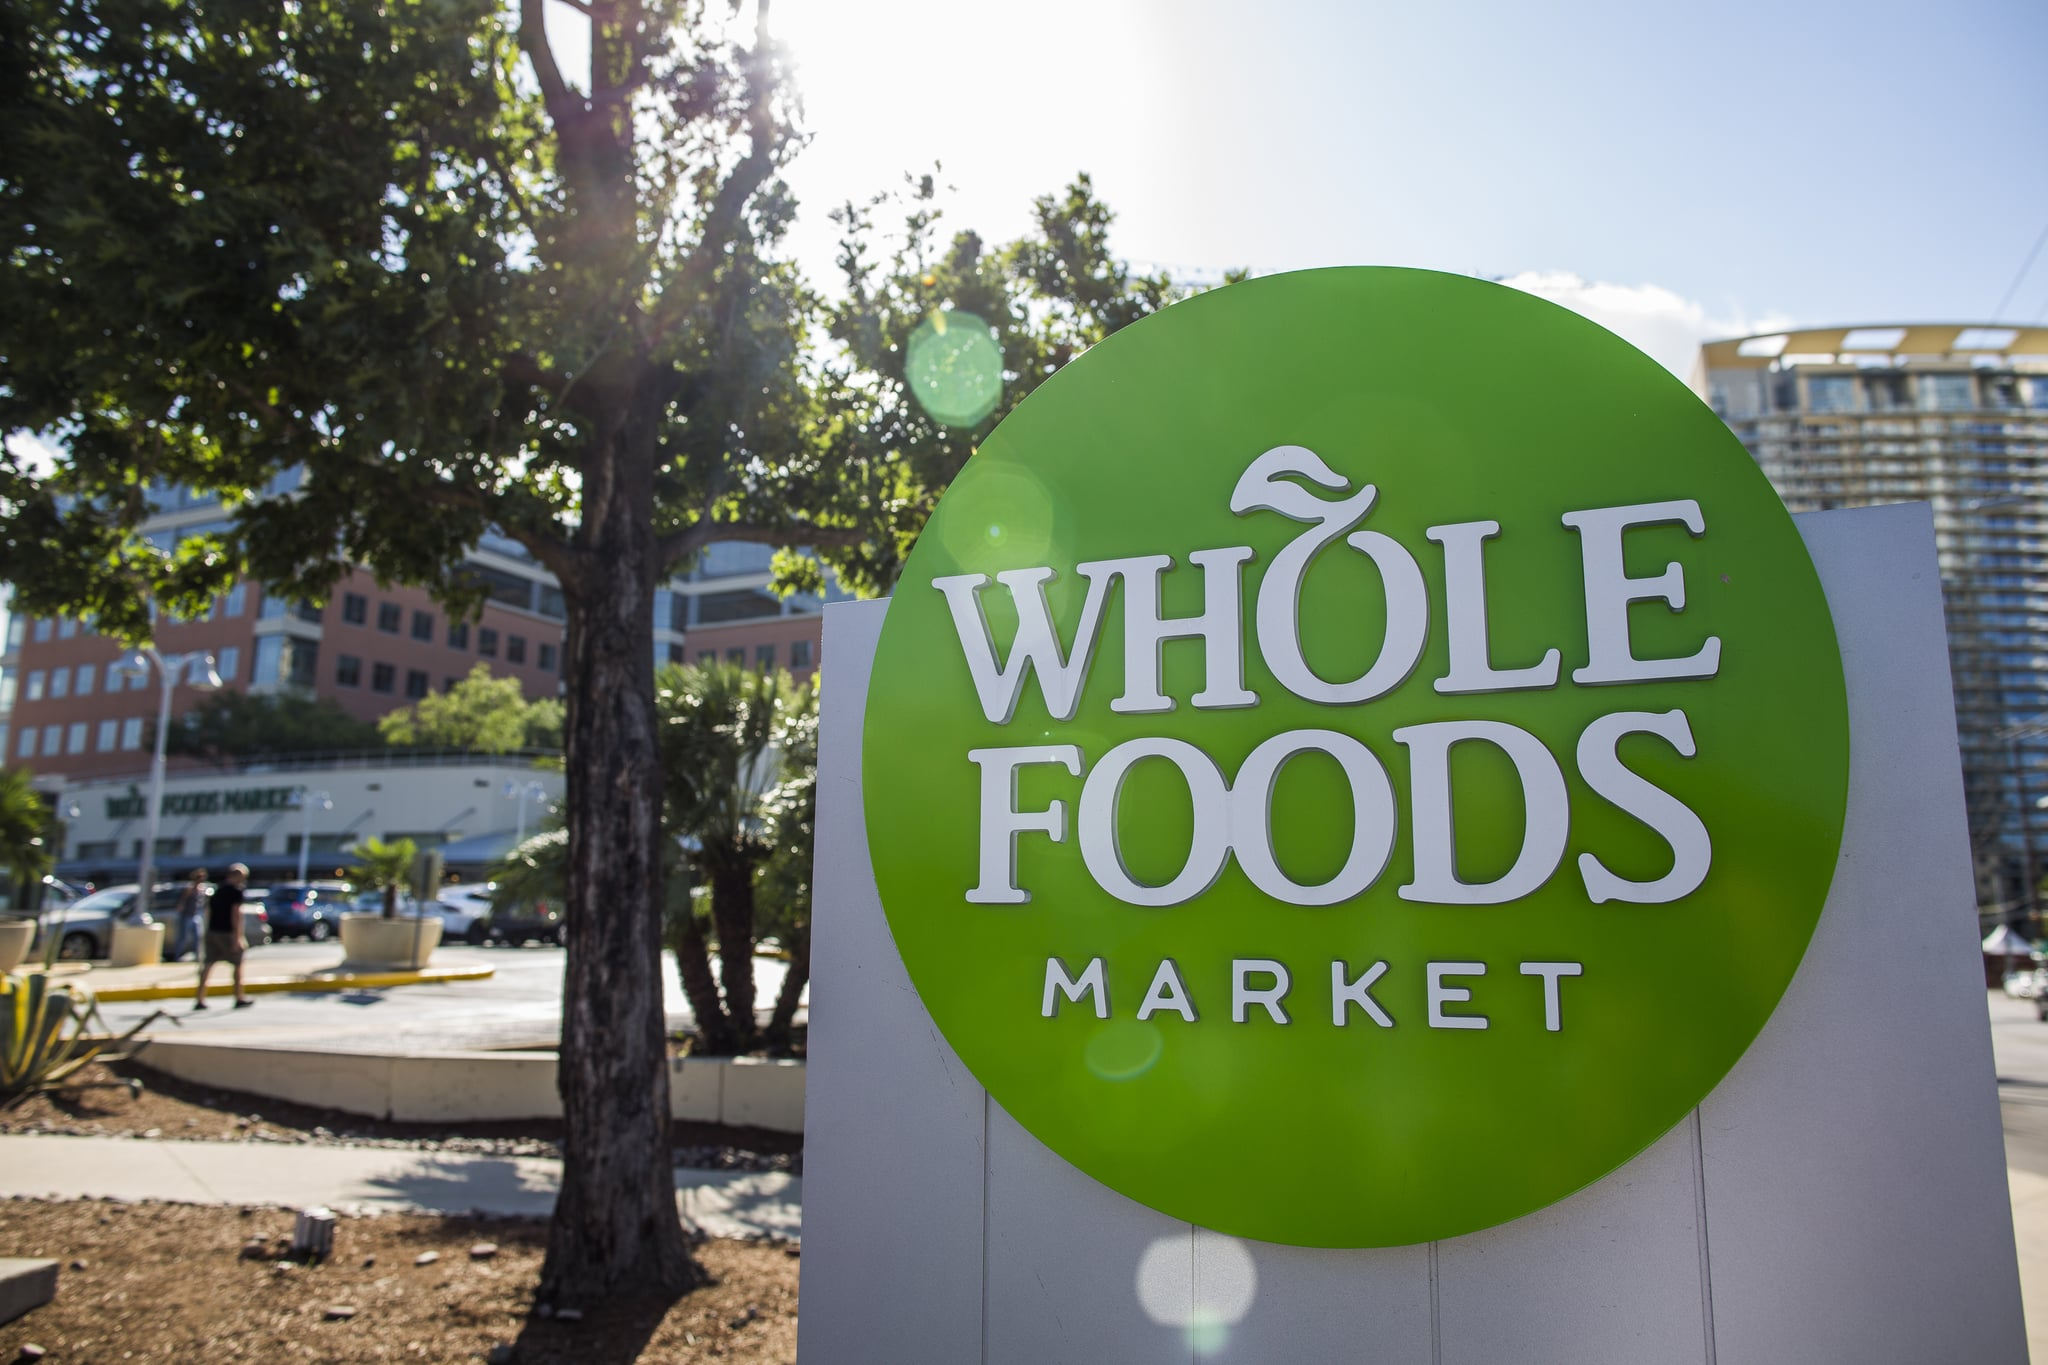 Amazon Prime members can get free two-hour delivery from Whole Foods